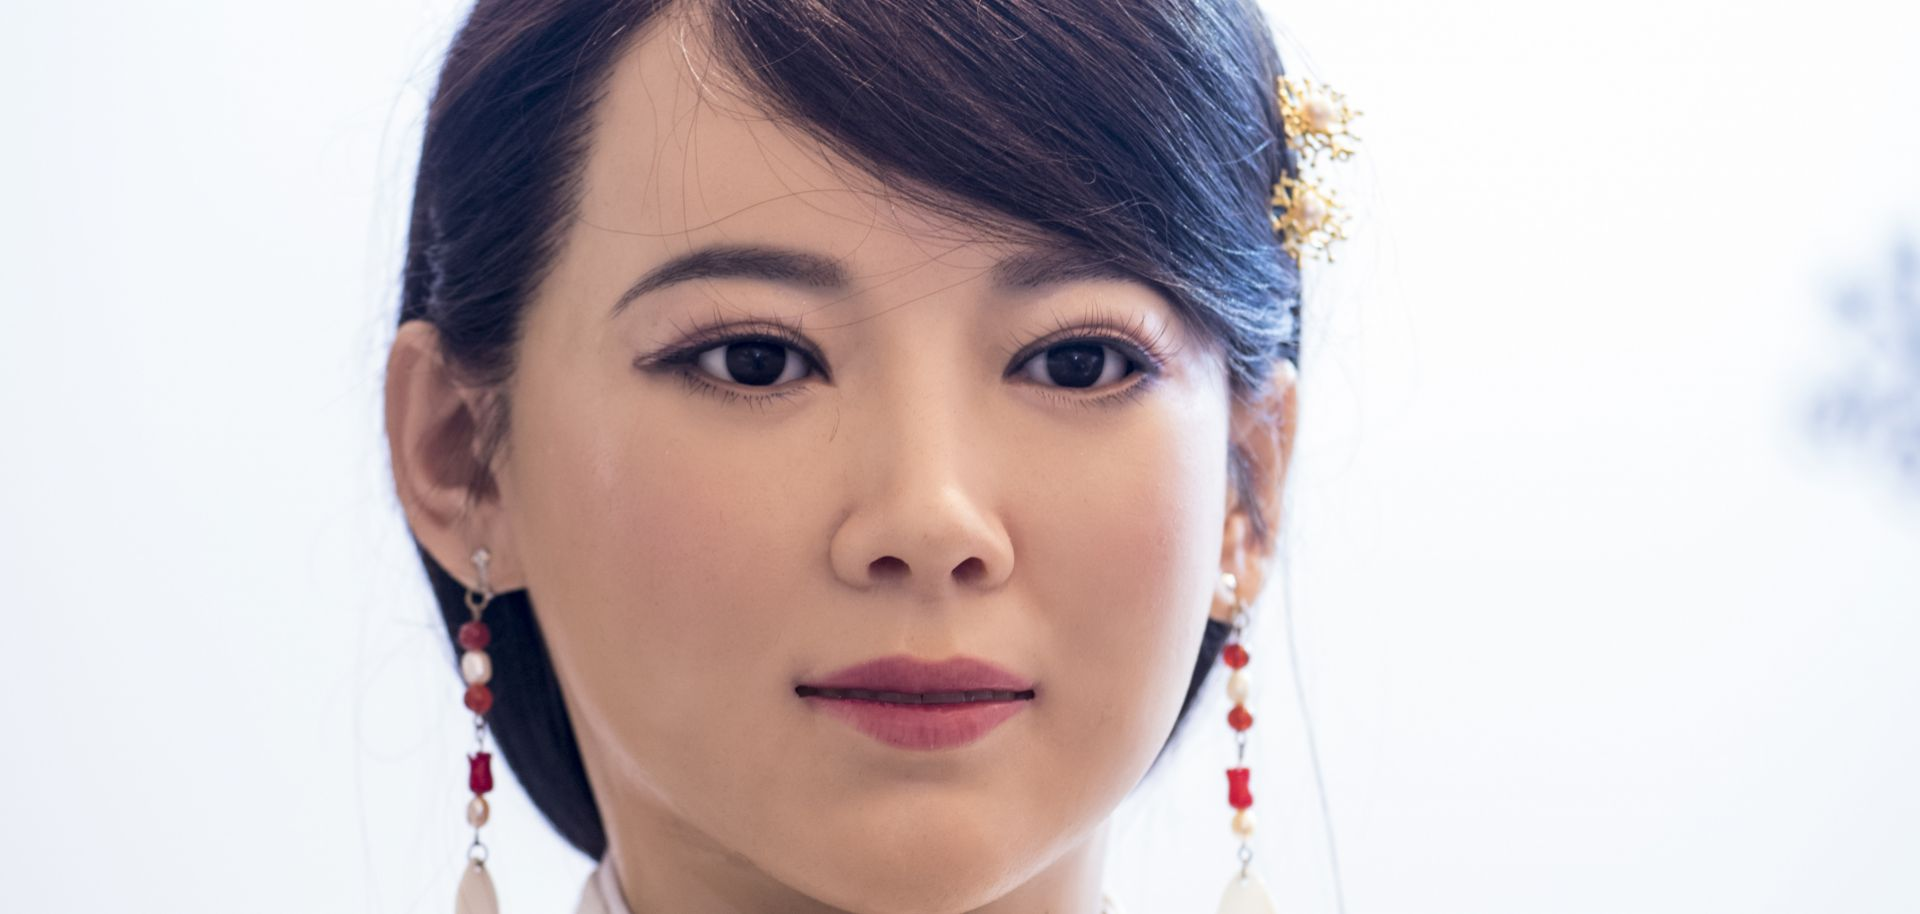 Jia Jia, a lifelike robot created by Chinese engineers, demonstrates at least one of her facial expressions at a conference in Shanghai on Jan. 9, 2017.